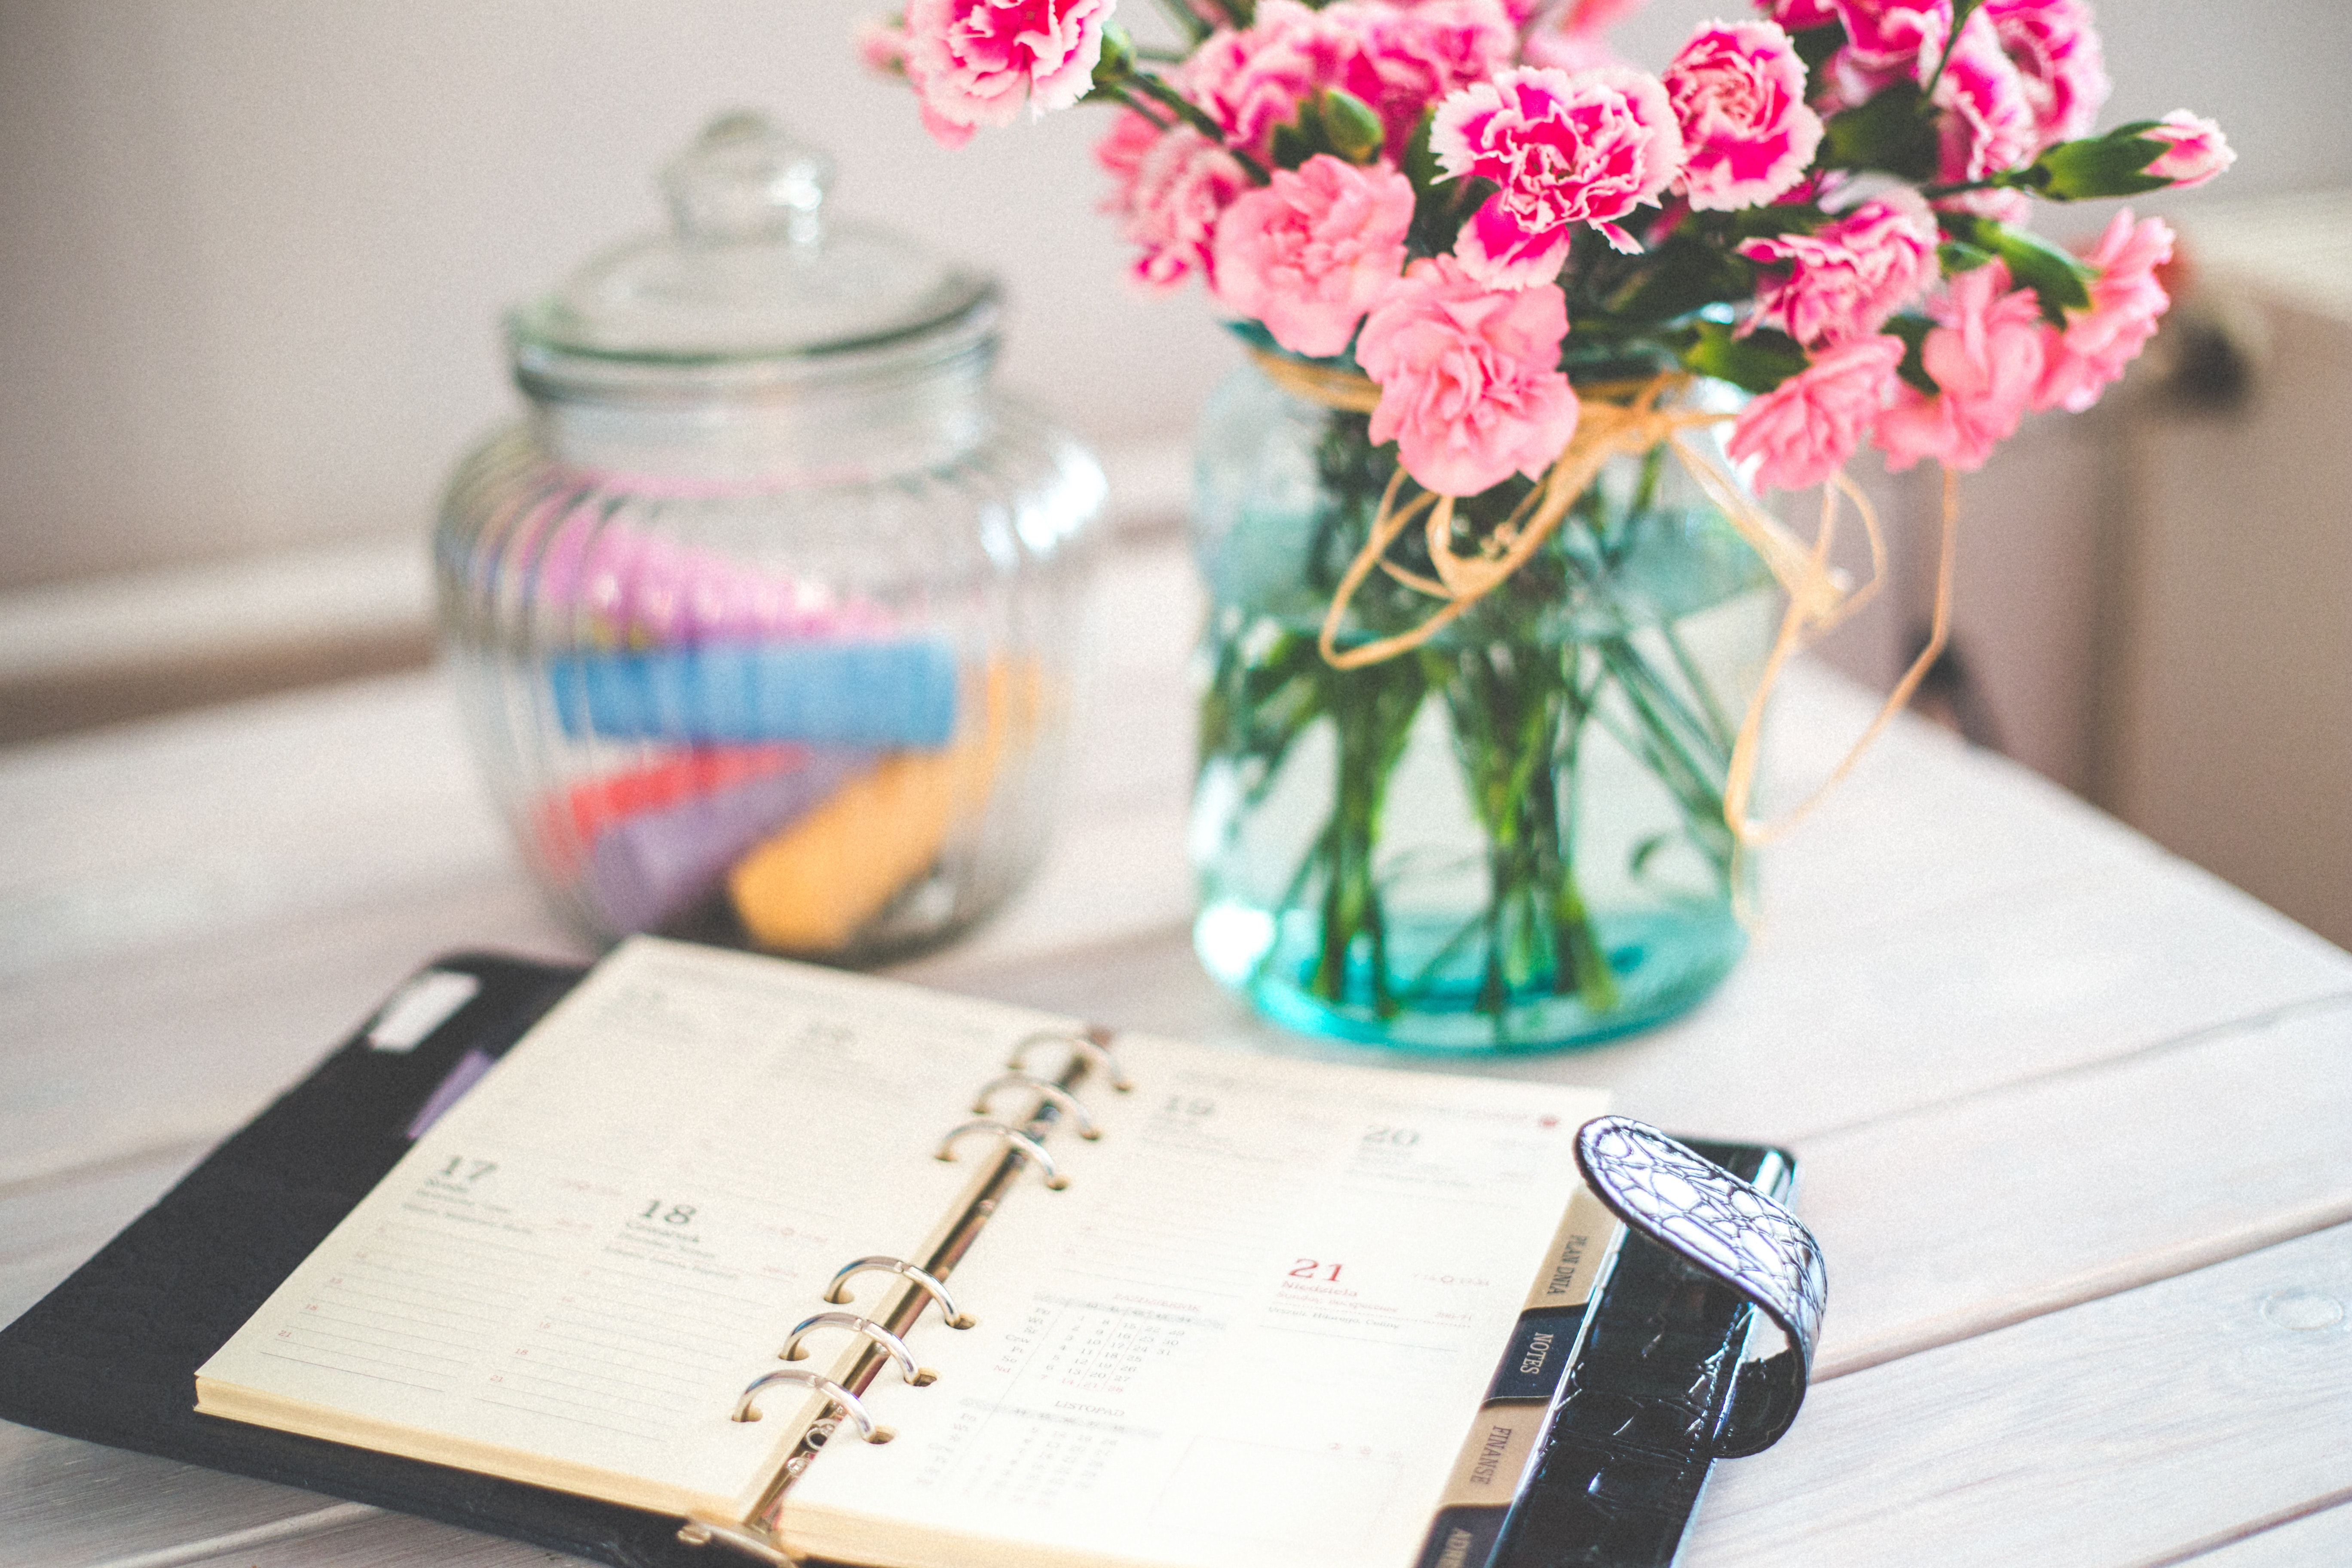 planner on a table with flowers